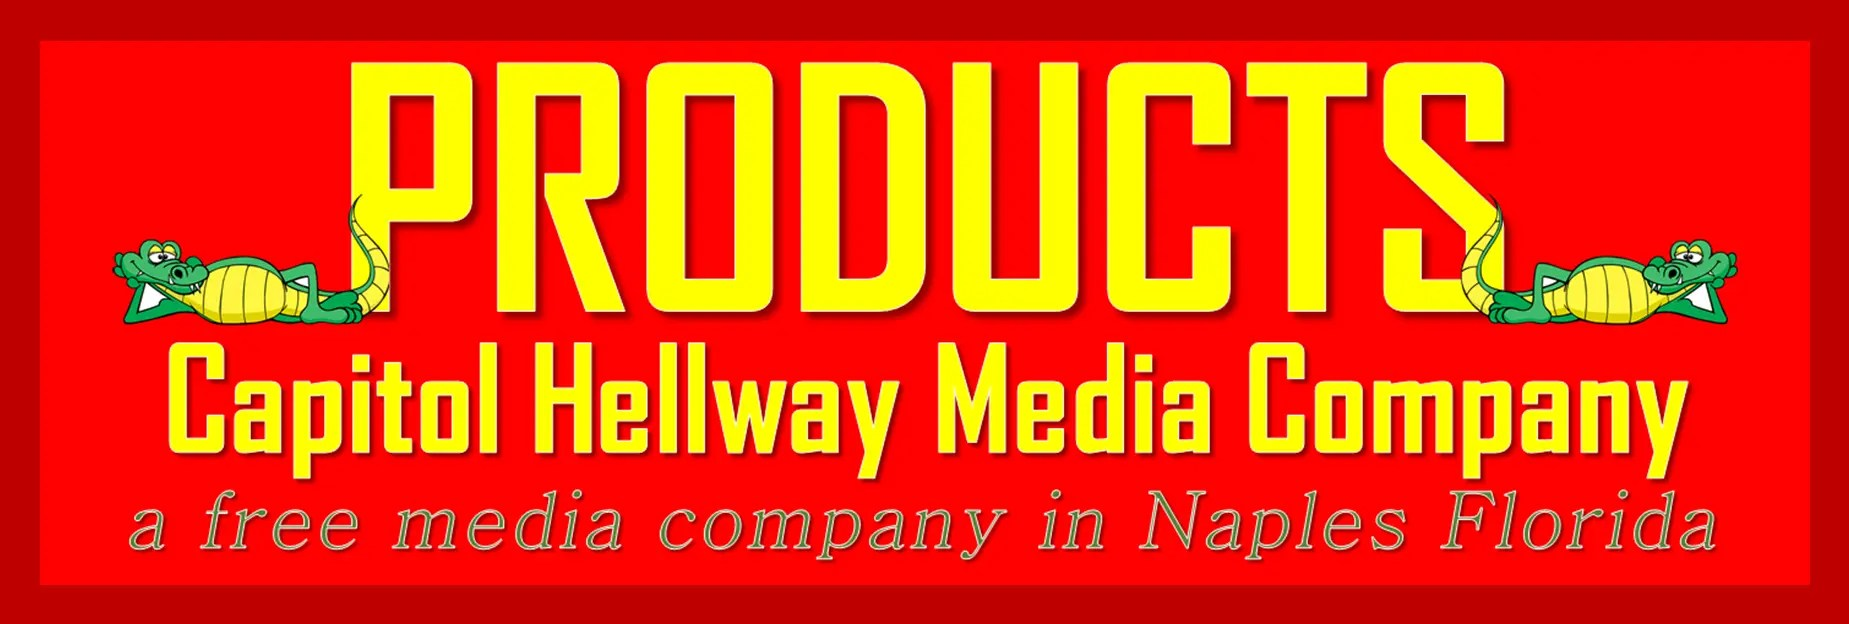 Capitol Hellway Media Company Products